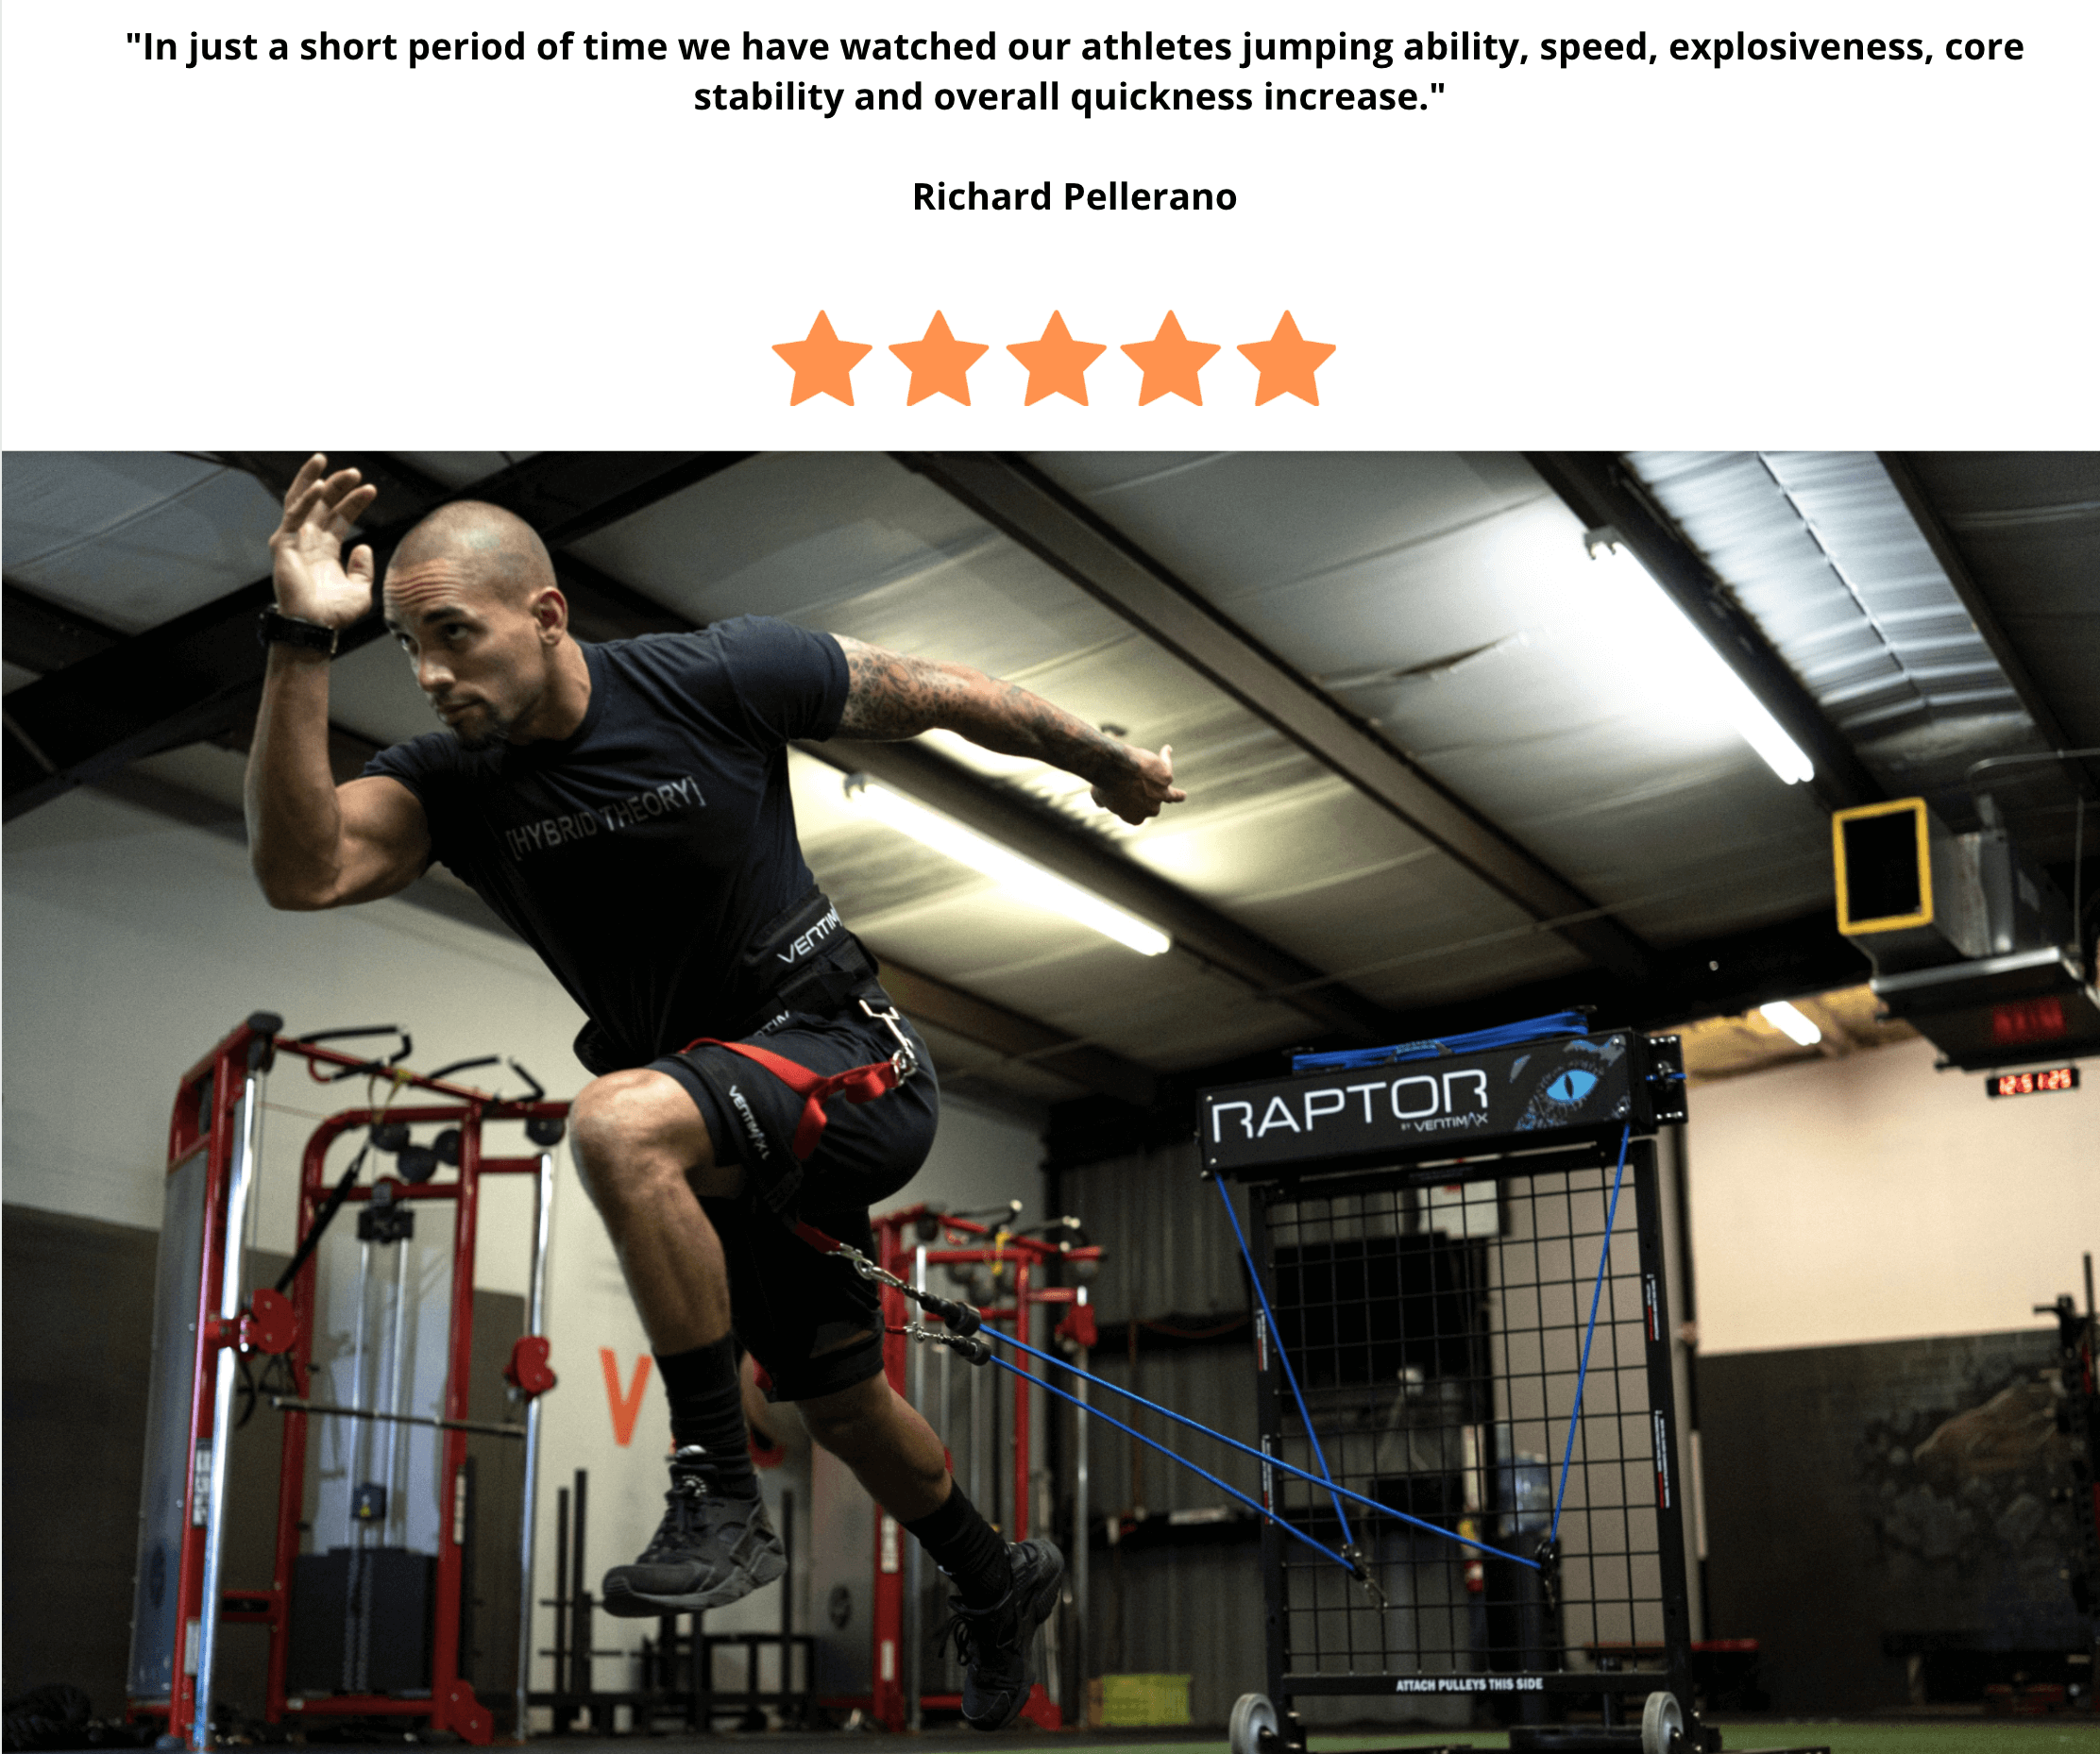 track and field training for jumping, speed exploxiveness stability and quickness - 1.1mb